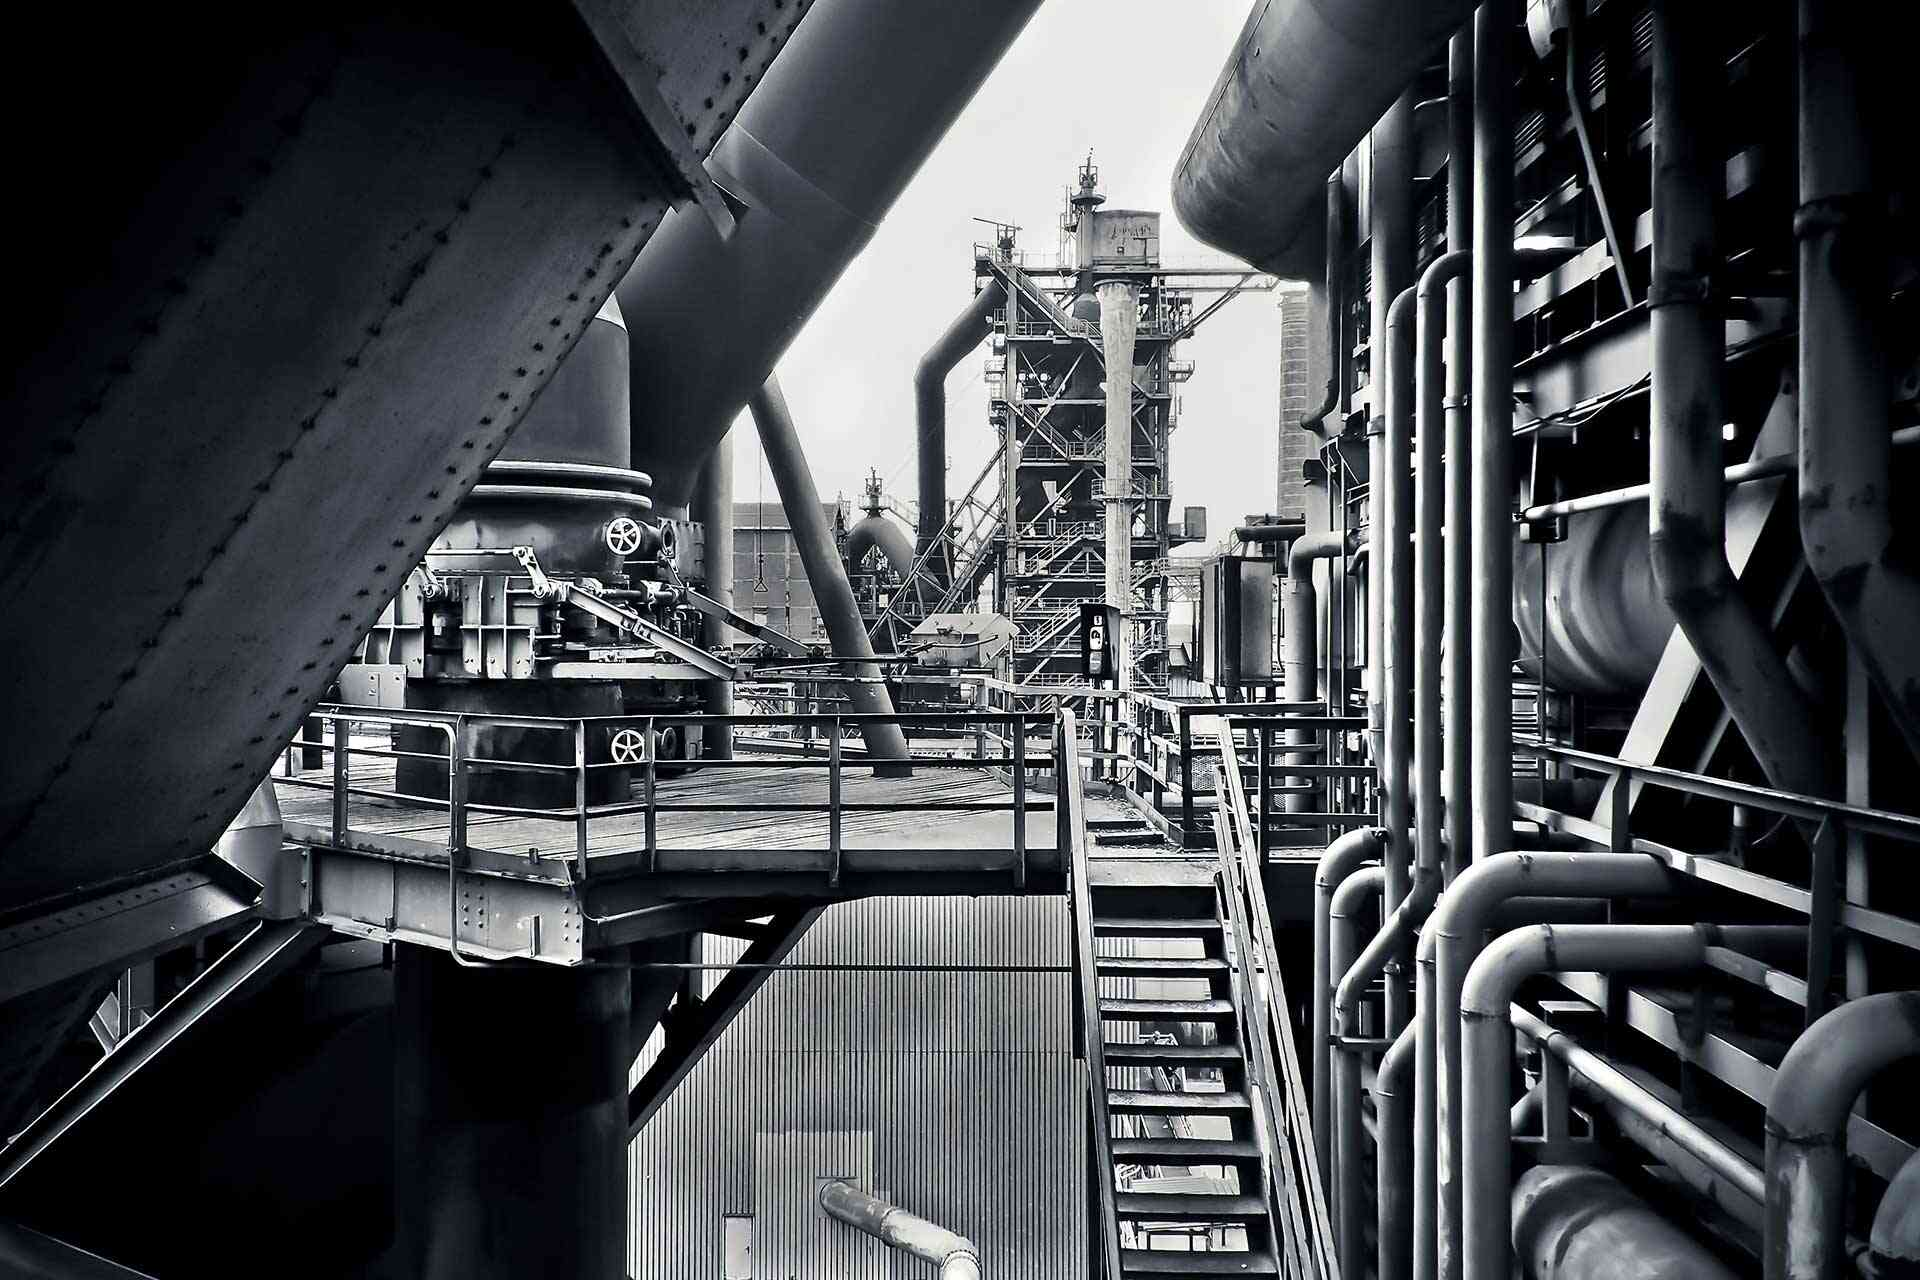 black and white factory industrial plant